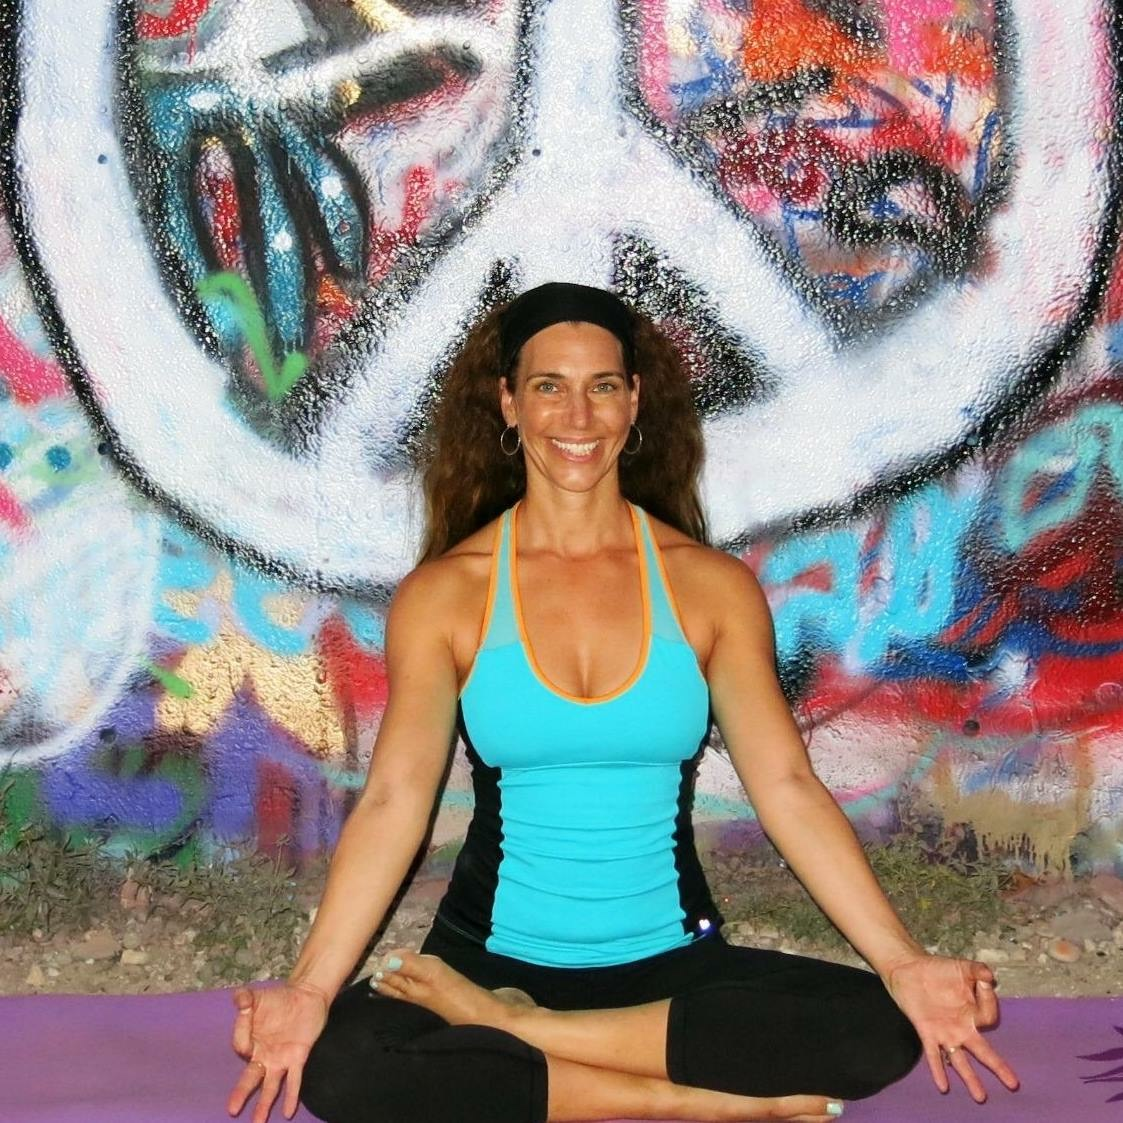 Kim Goyette, International Yoga Presenter    Kim Goyette  is a yogini, mother and lover of life. She began her yogic journey in 2006 when she was searching for balance while working in an extremely stressful position in corporate America. Her love of yoga grew as her personal practice provided a powerful way to rejuvenate her energy and nourish herself. As an international teacher and student of yoga and co-owner of Fitness 4 Mind & Body, Kim supports an integrated experience by guiding asana from the foundation of breath incorporating practices of pranayama, mantra, mudra, meditation, and personal ritual.   Website    Facebook    Instagram     Join Kim's Email List